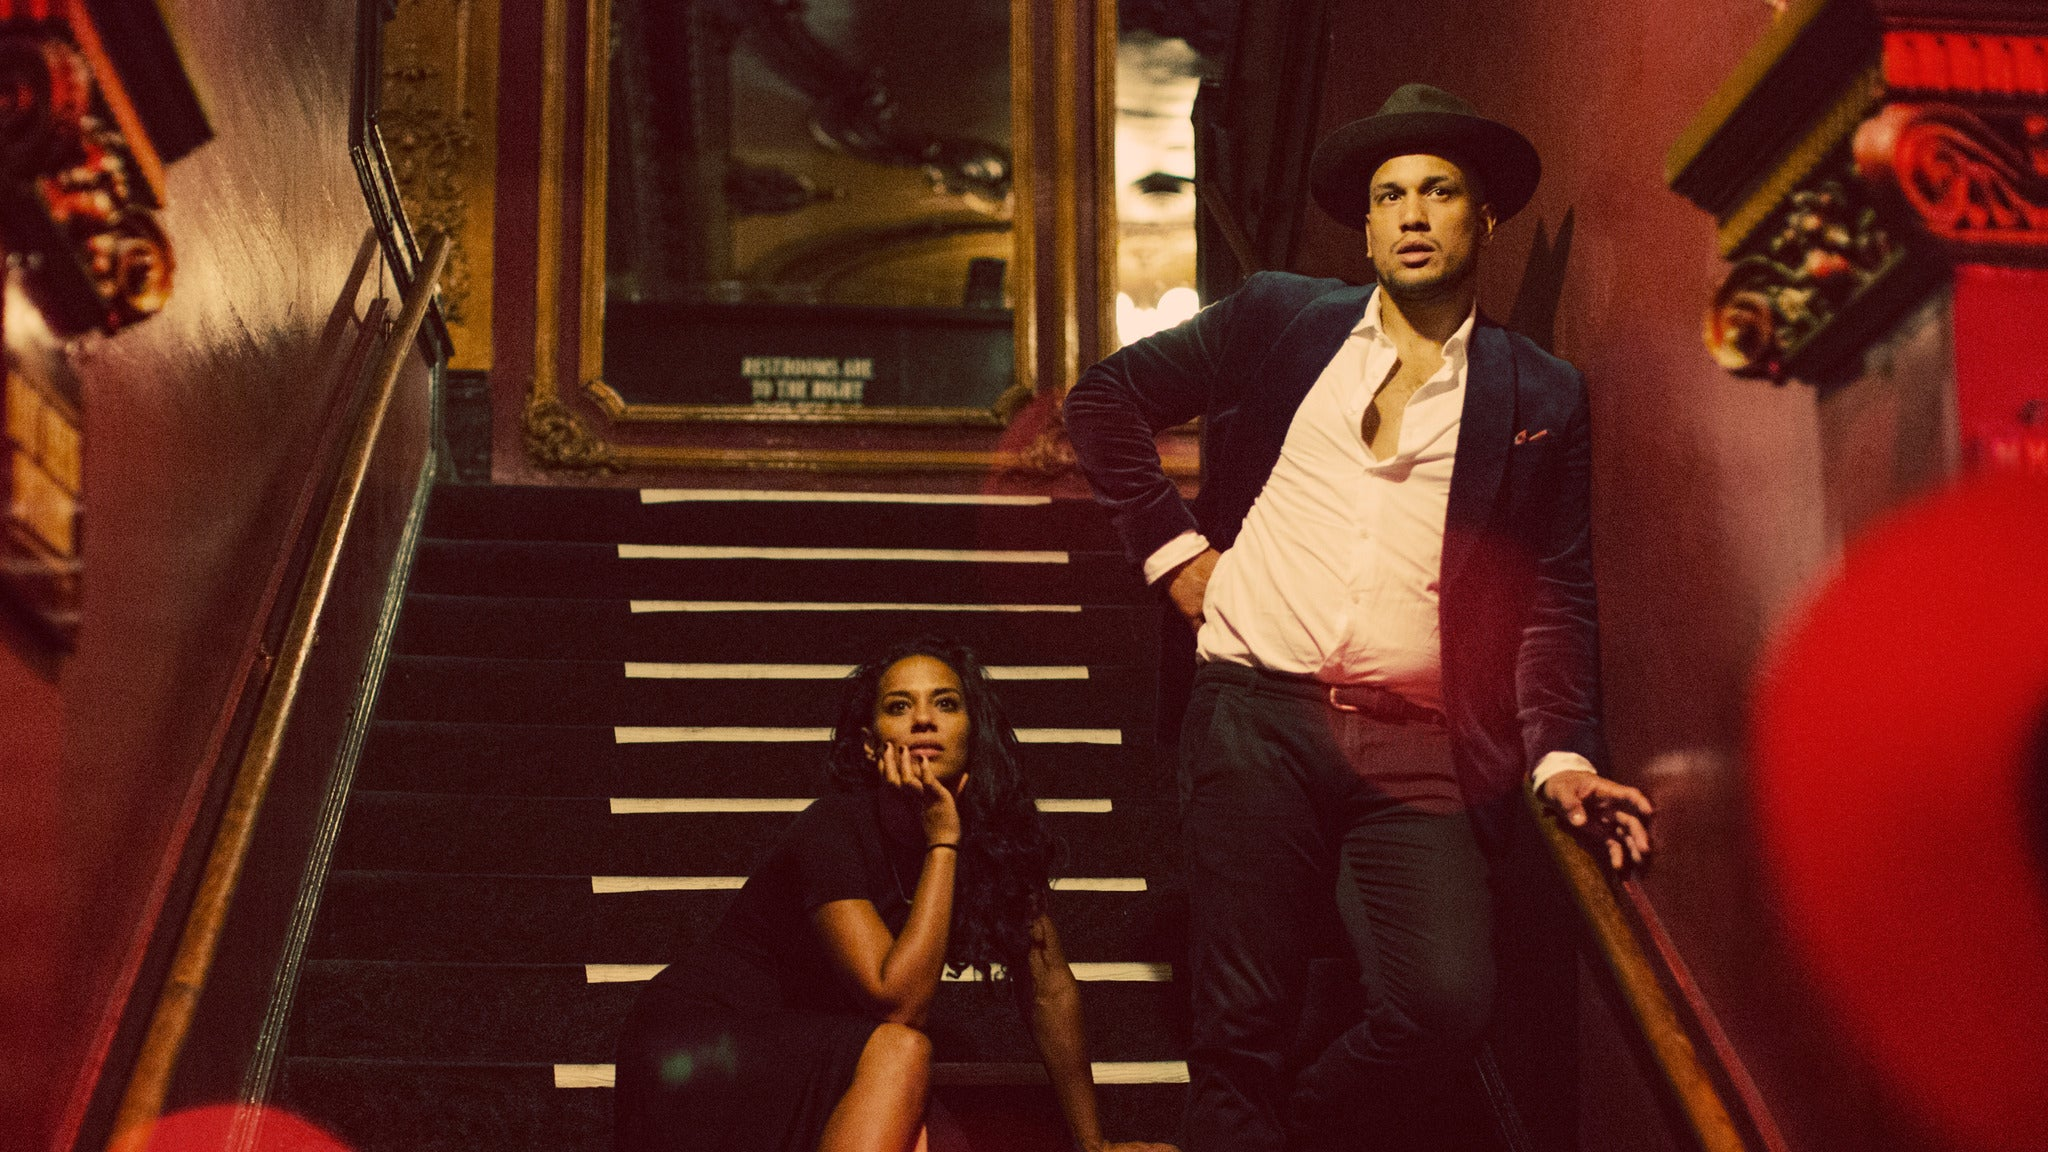 JOHNNYSWIM - Meet & Greet Packages at Red Rocks Amphitheatre